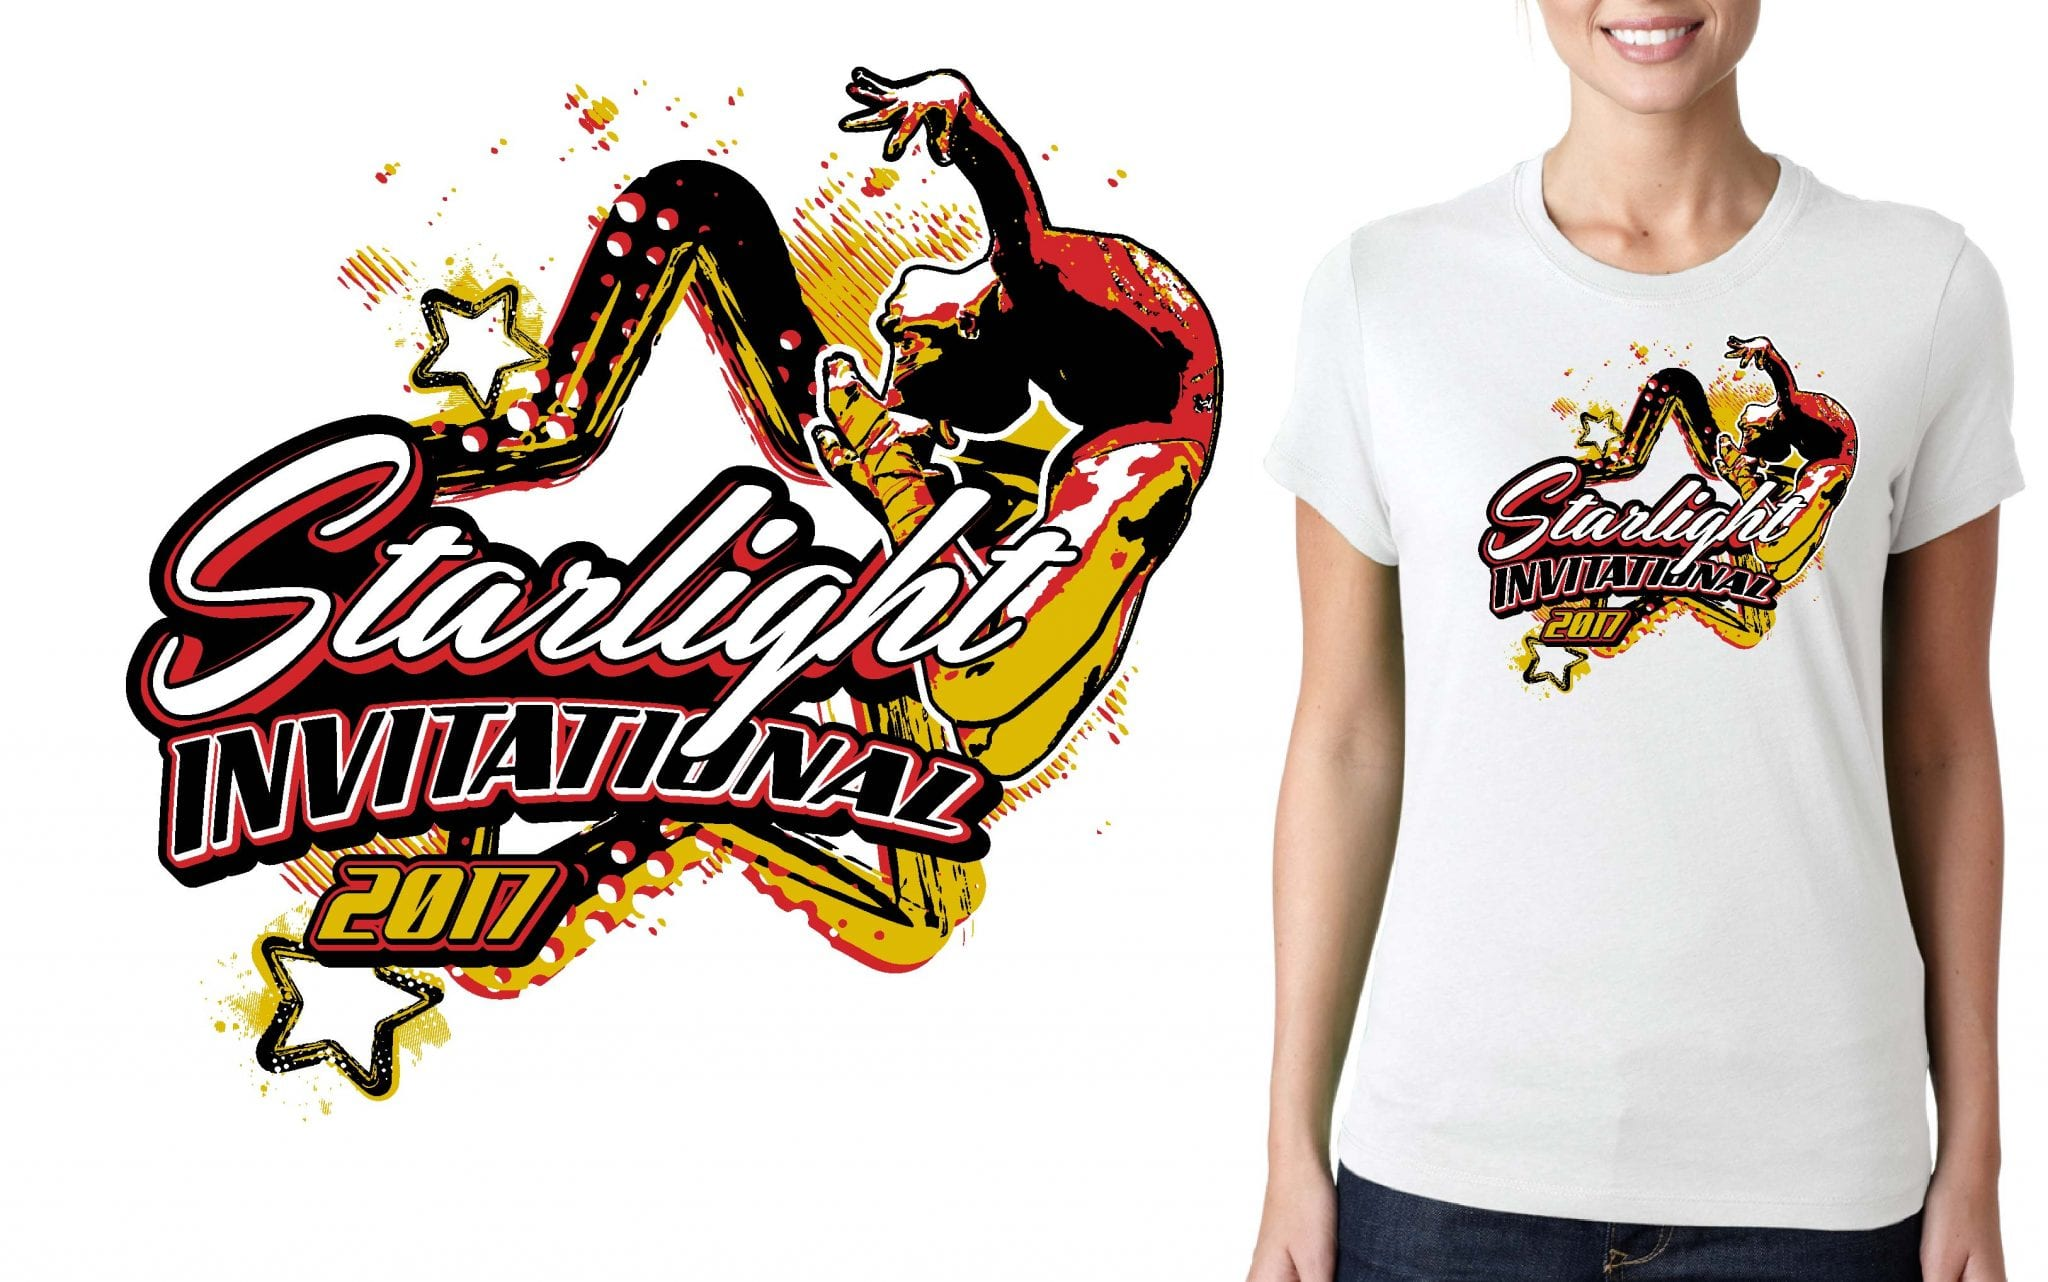 GYMNASTICS T SHIRT LOGO DESIGN Starlight-Invitational BY UrArtStudioGYMNASTICS T SHIRT LOGO DESIGN Starlight-Invitational BY UrArtStudio